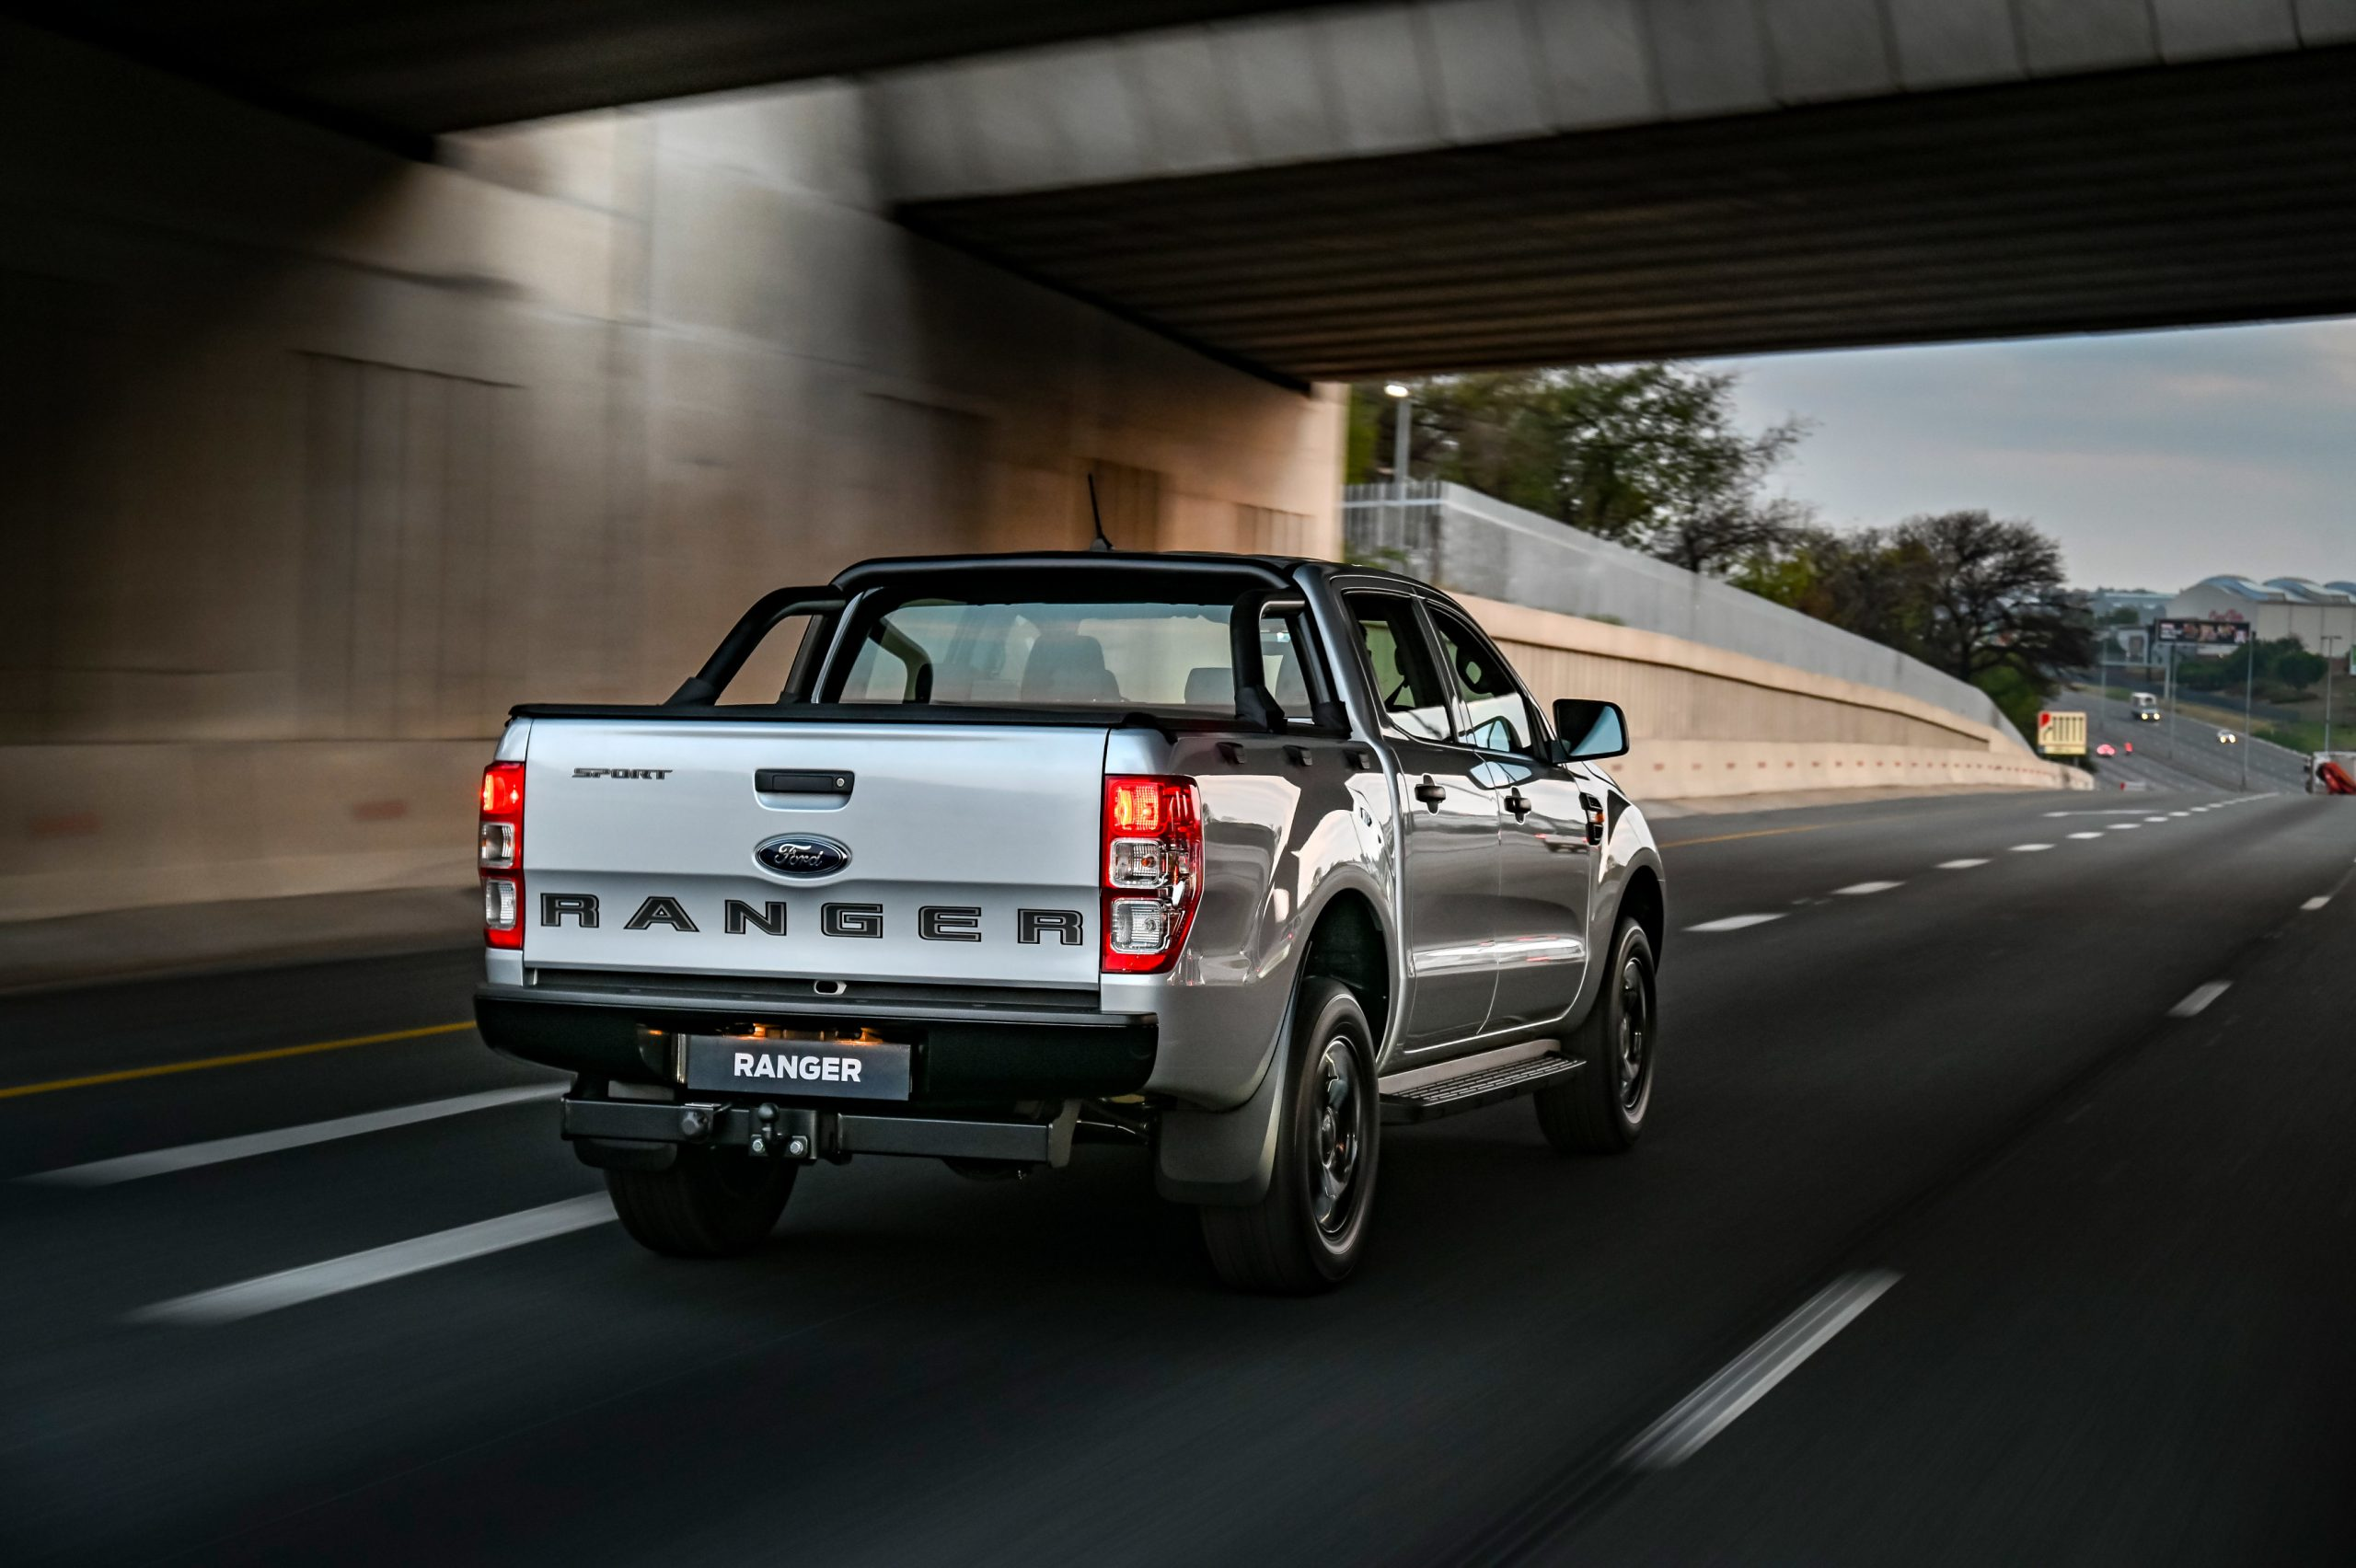 Next-generation Ford Ranger built in SA may be a hybrid vehicle